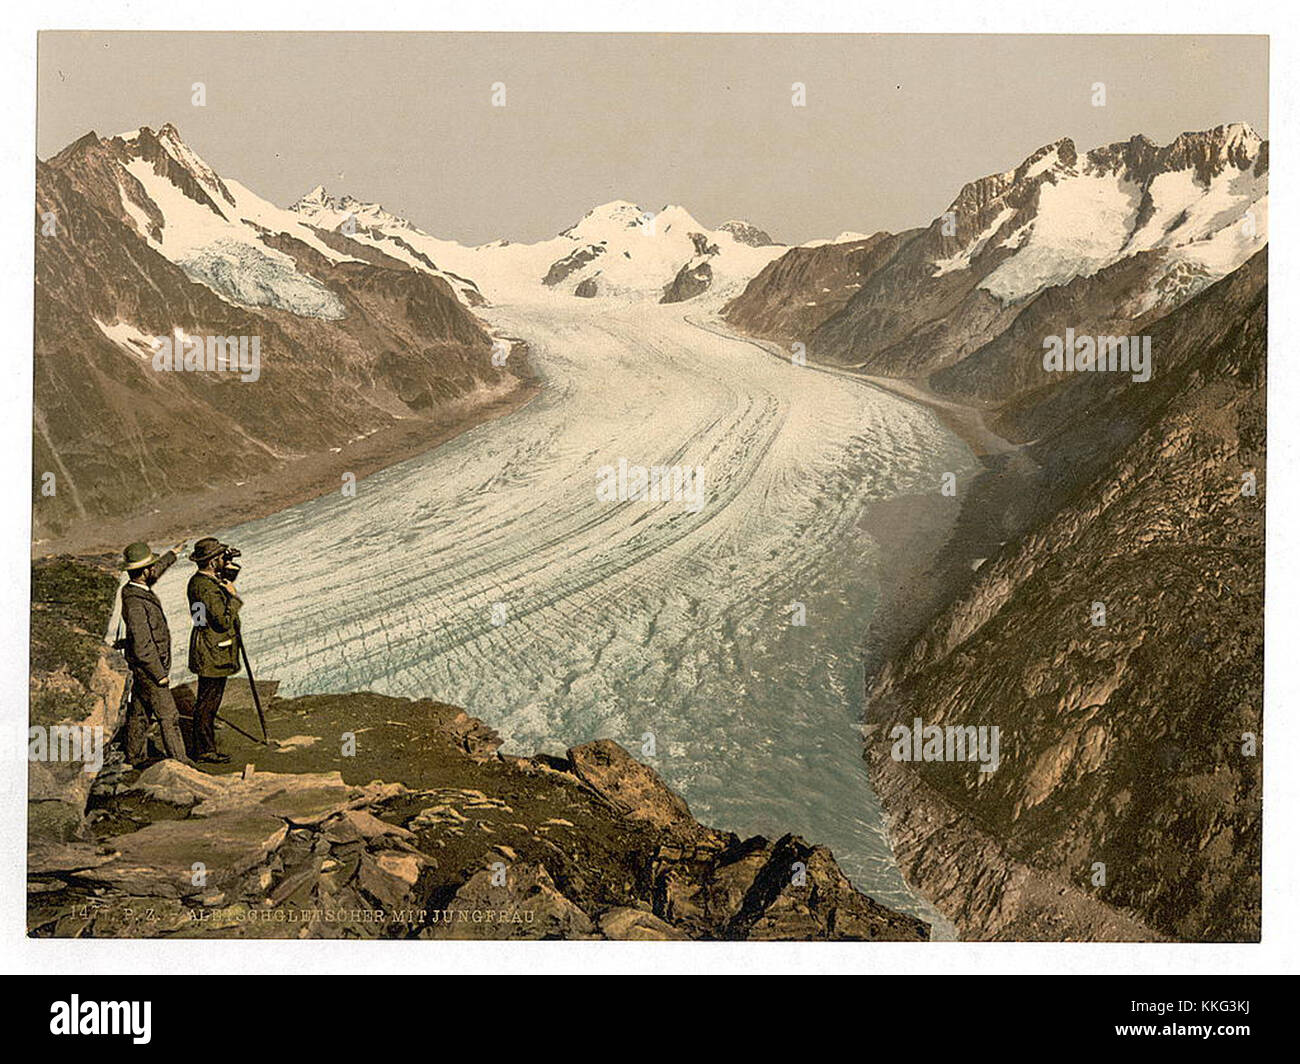 A beautiful vintage landscape with a mountain range - Stock Image